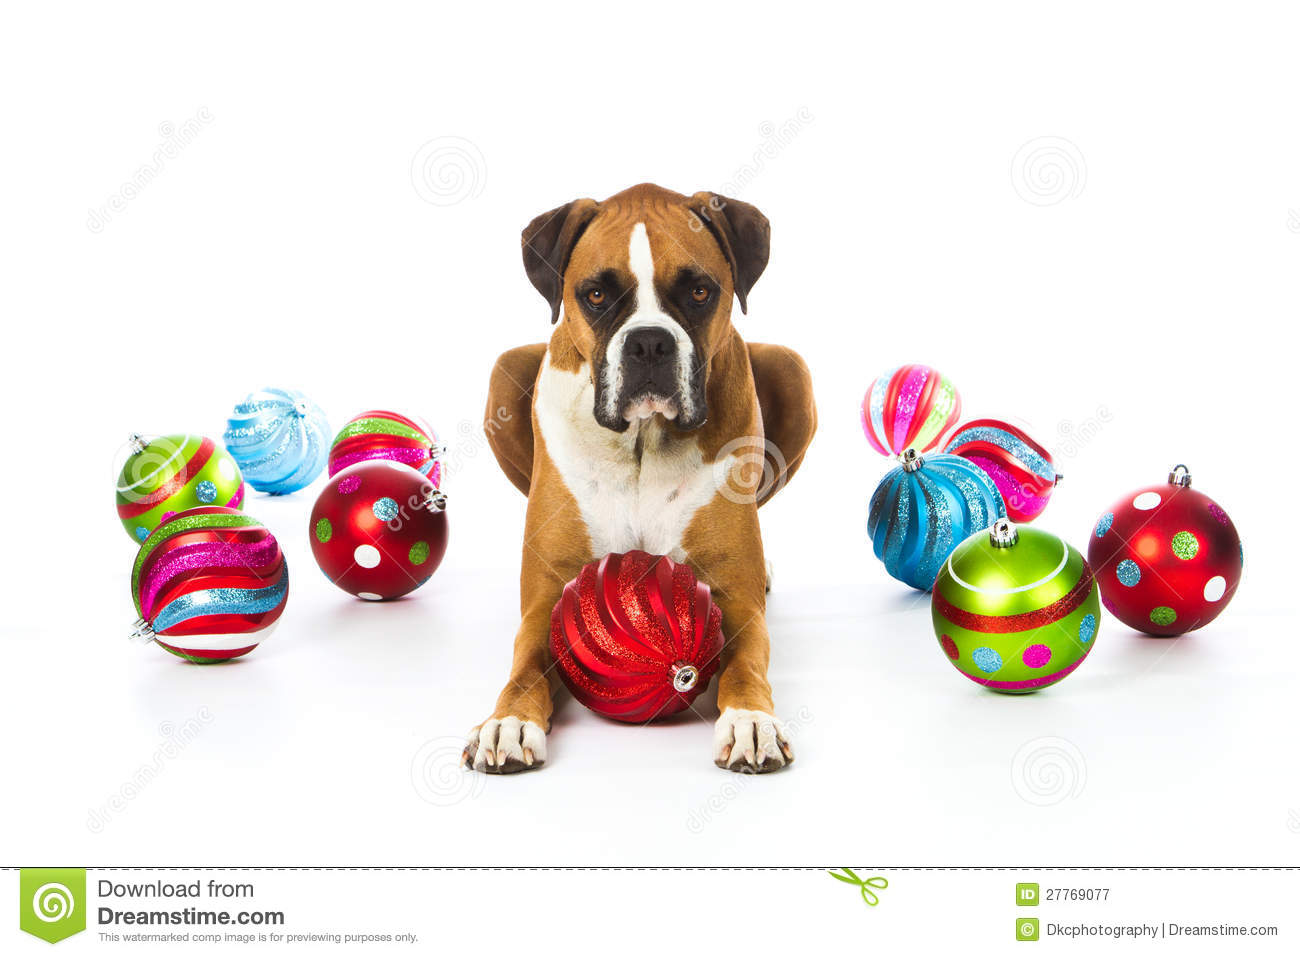 Dog christmas ornaments - Boxer Dog With Christmas Ornaments Royalty Free Stock Photography